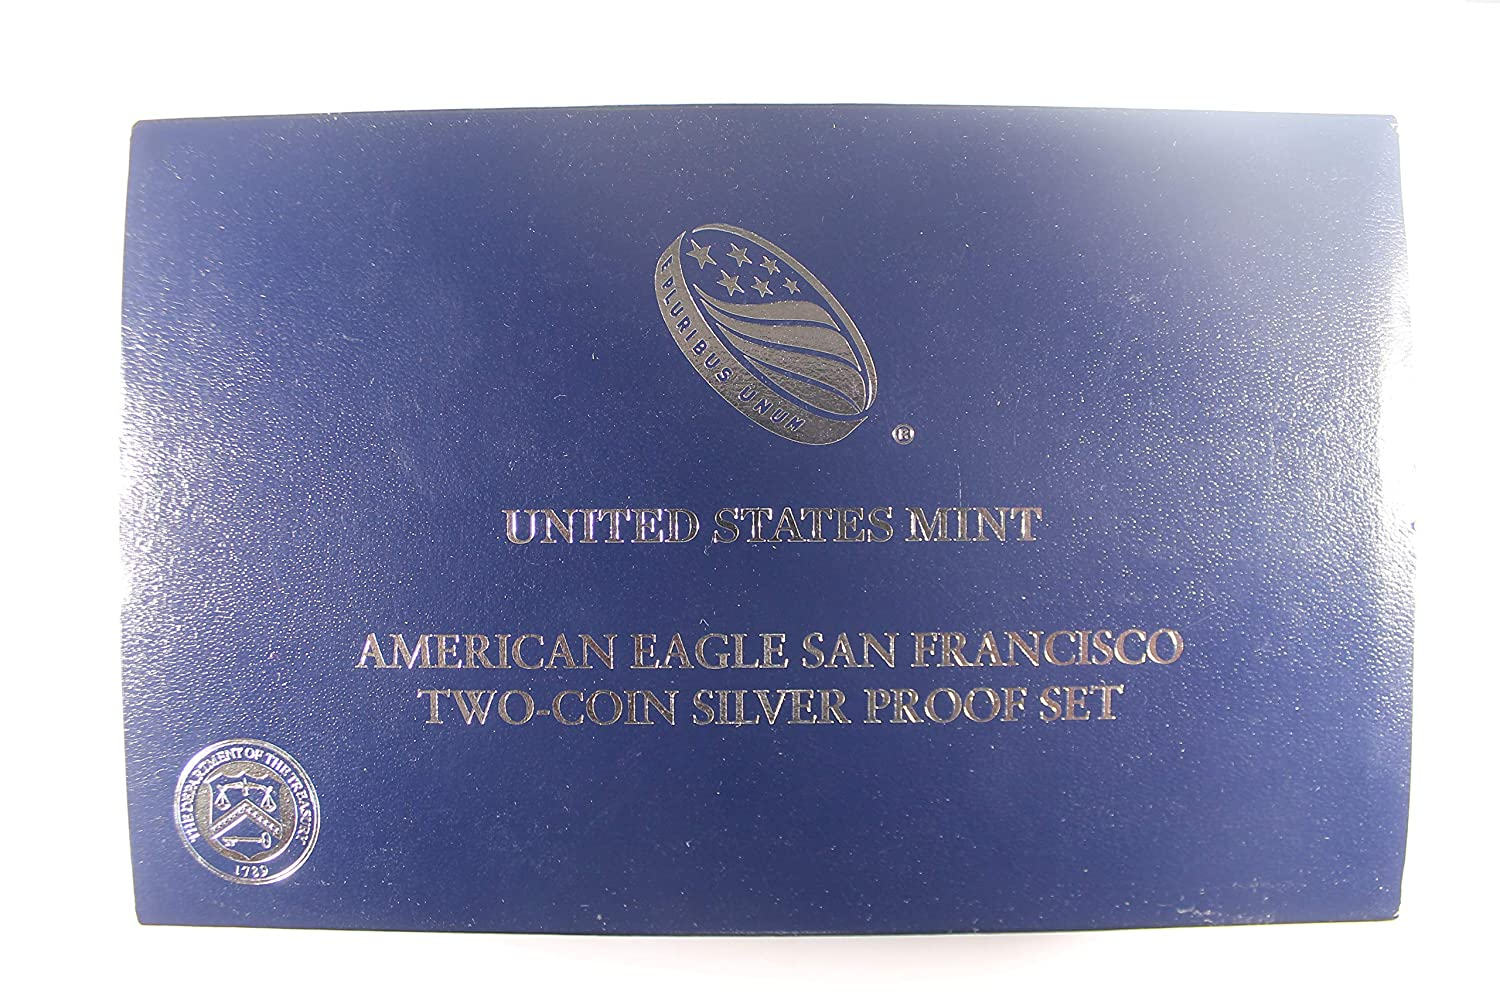 2 Two 2012 American Eagle San Francisco Two Coin Silver Proof Set box NO COINS